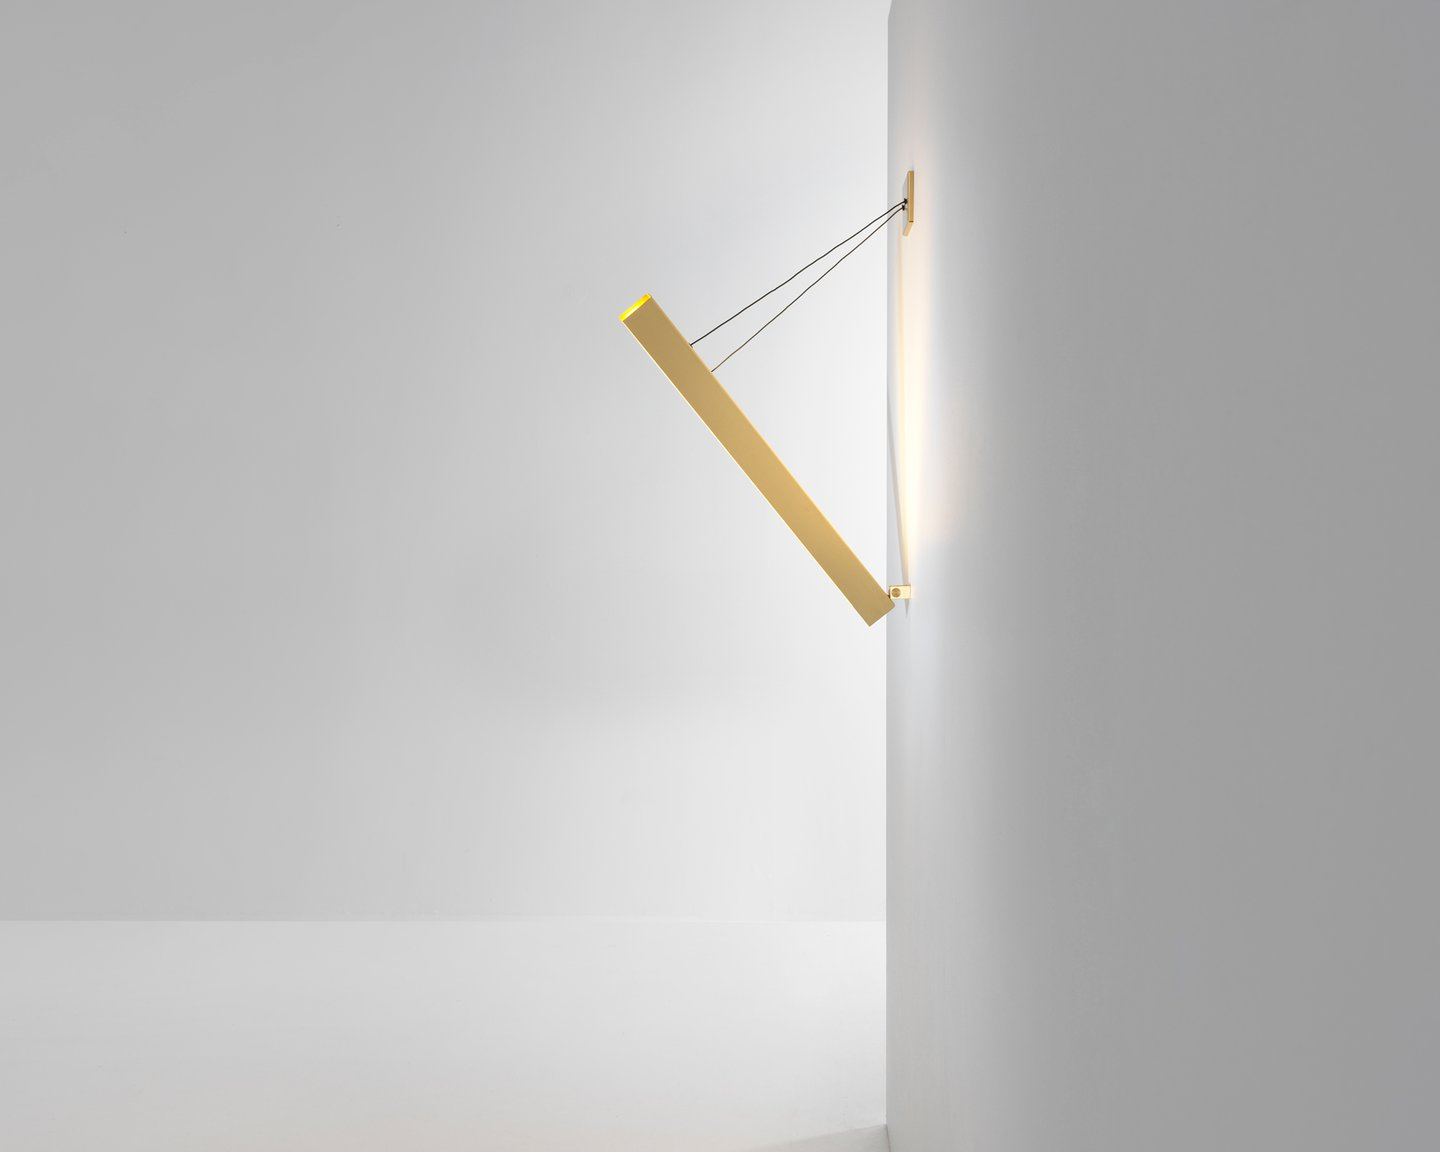 Image: uploads/2017_03/Resident-V-Wall-Light-by-Resident-Studio-3.jpg